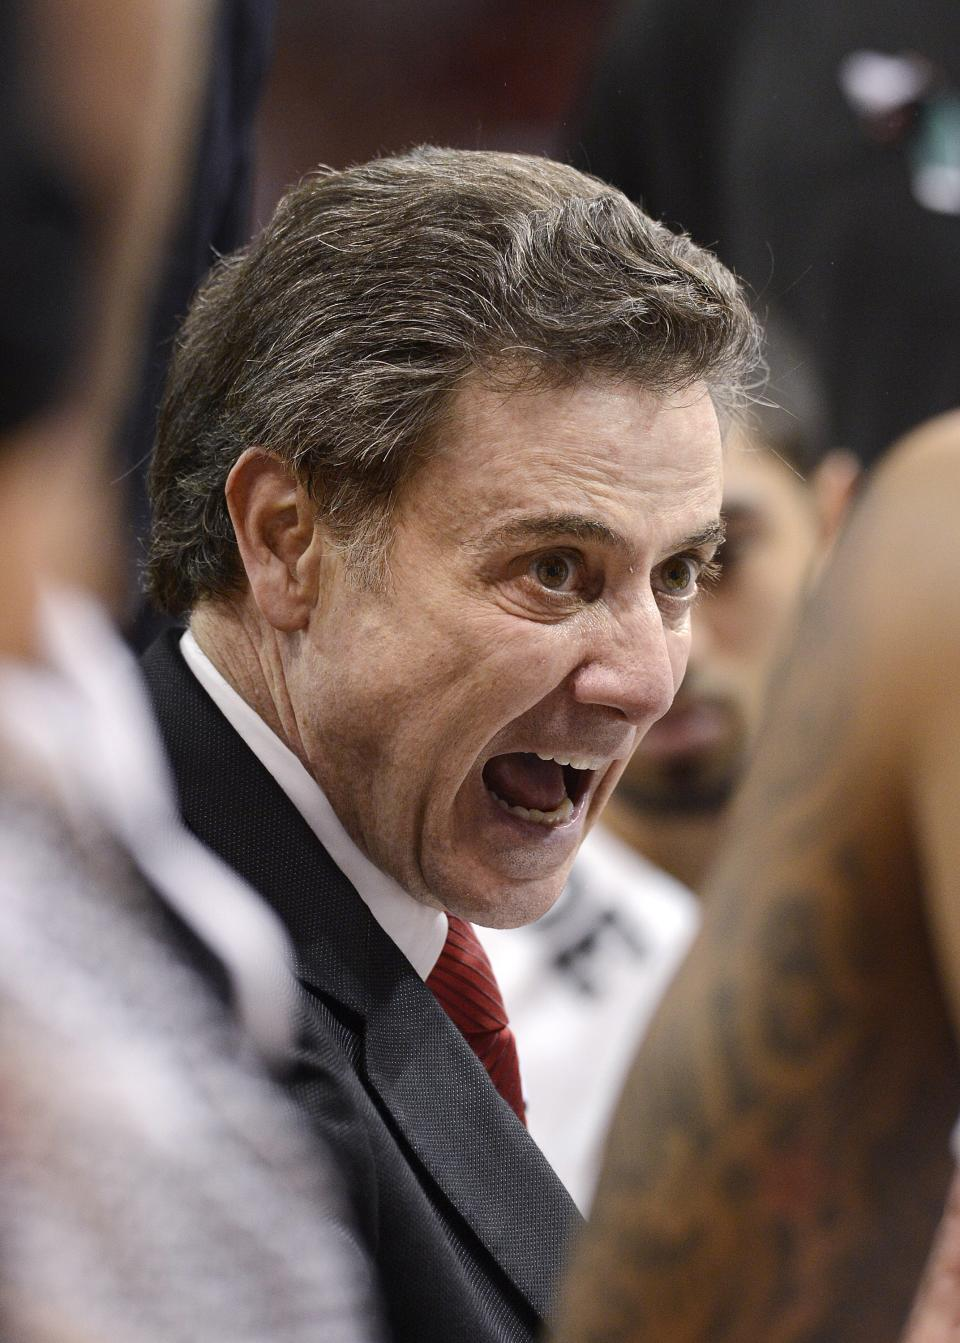 Louisville coach Rick Pitino talks to his players during a timeout in the second half of an NCAA college basketball game against South Florida on Saturday, Jan. 12, 2013, in Louisville, Ky. Louisville defeated South Florida 64-38. (AP Photo/Timothy D. Easley)